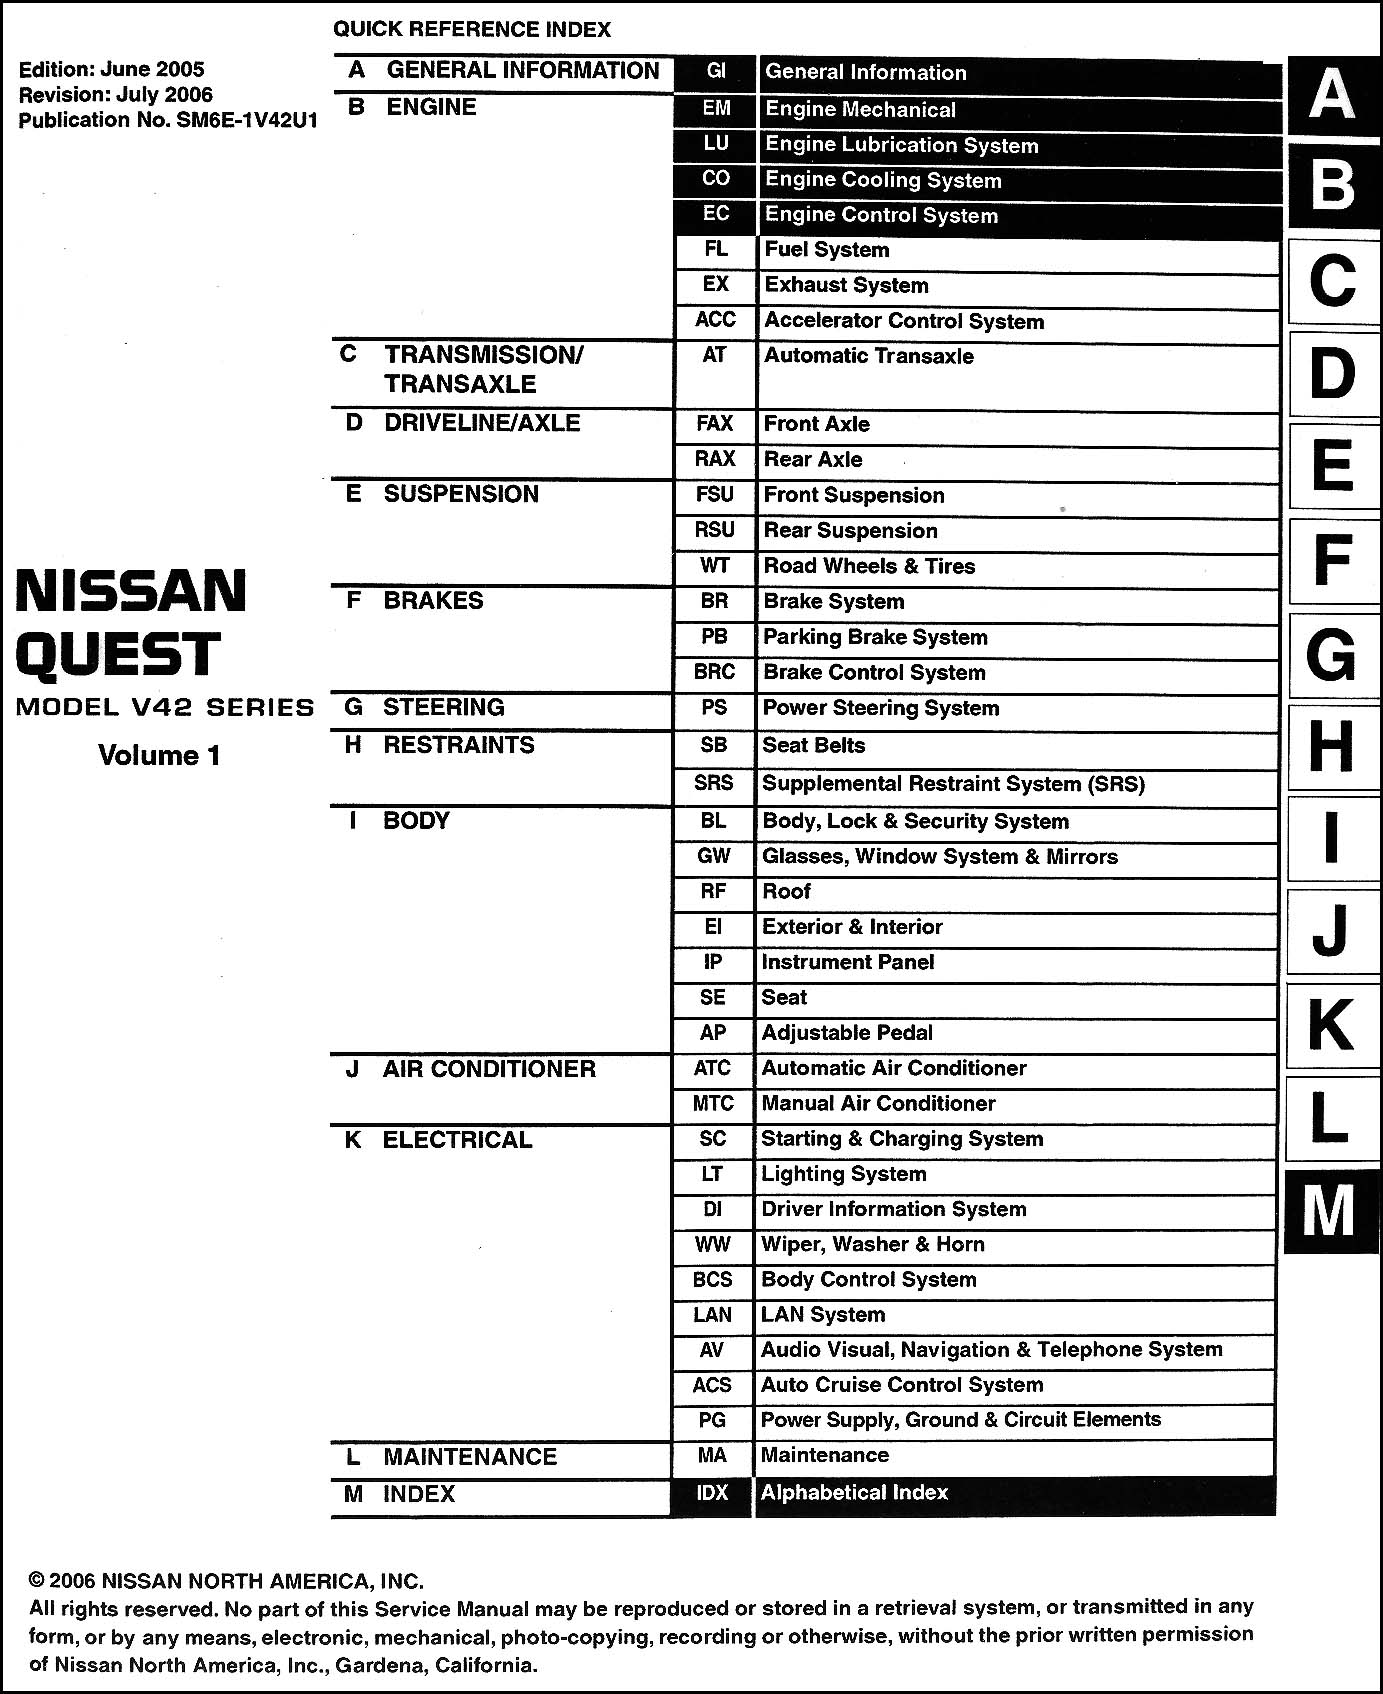 94 nissan quest fuse diagram enthusiast wiring diagrams u2022 rh rasalibre co 2012 Nissan Altima Fuse Diagram 2012 Nissan Altima Fuse Diagram